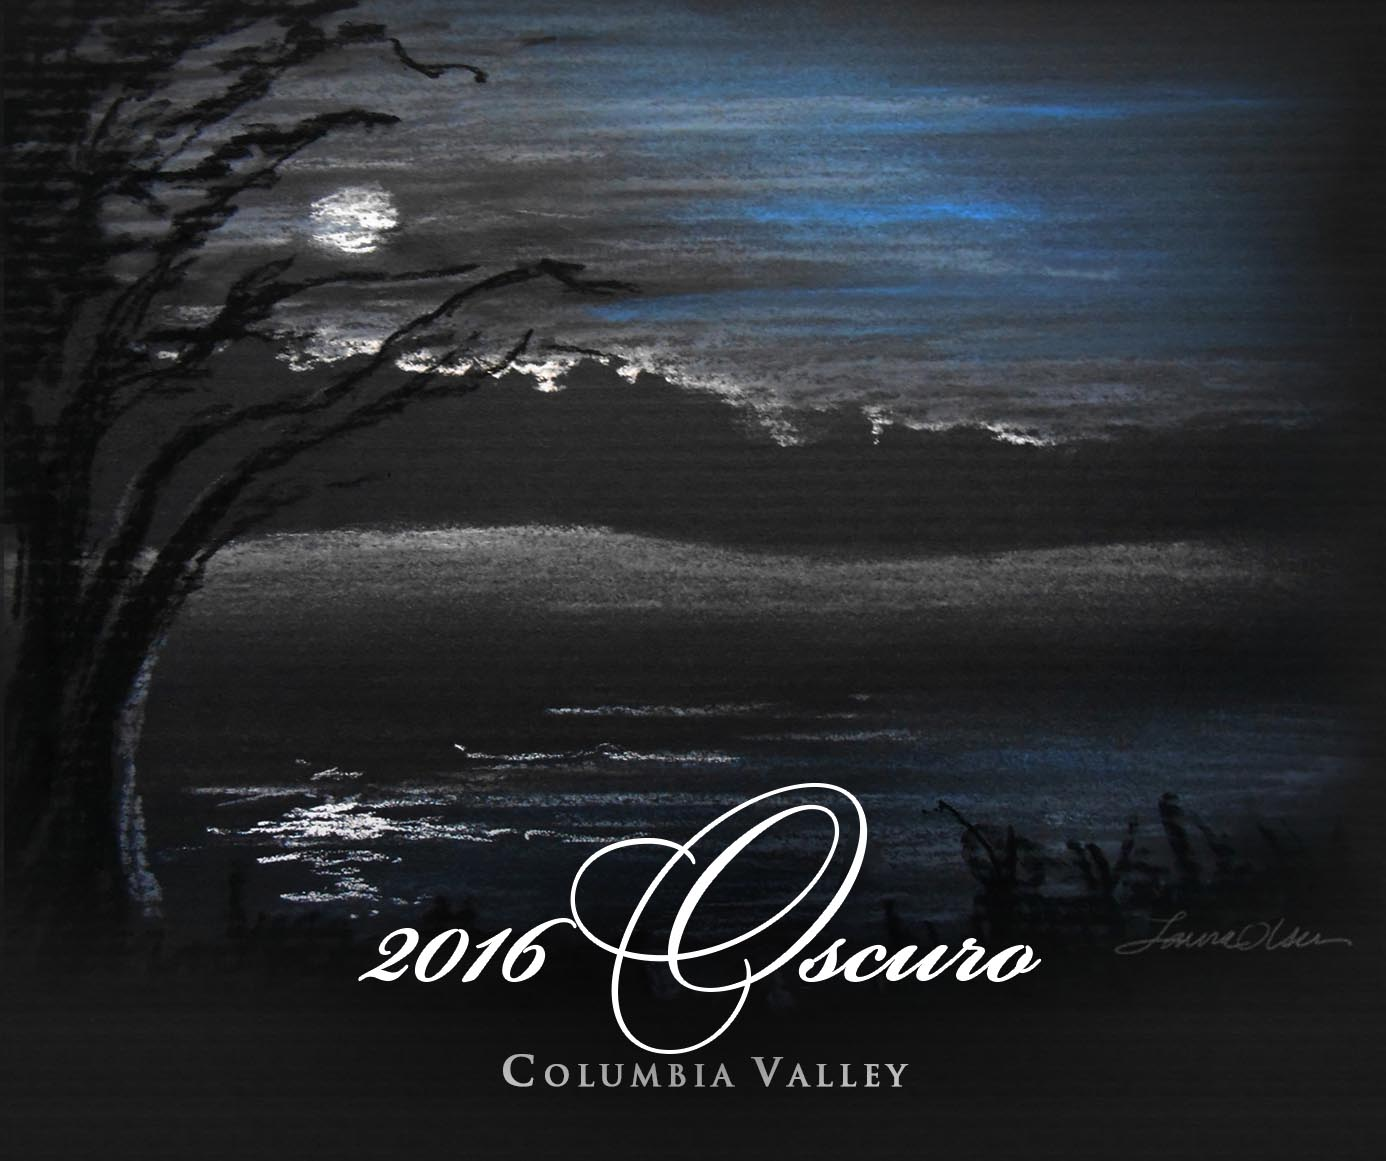 2016 Oscuro Columbia Valley